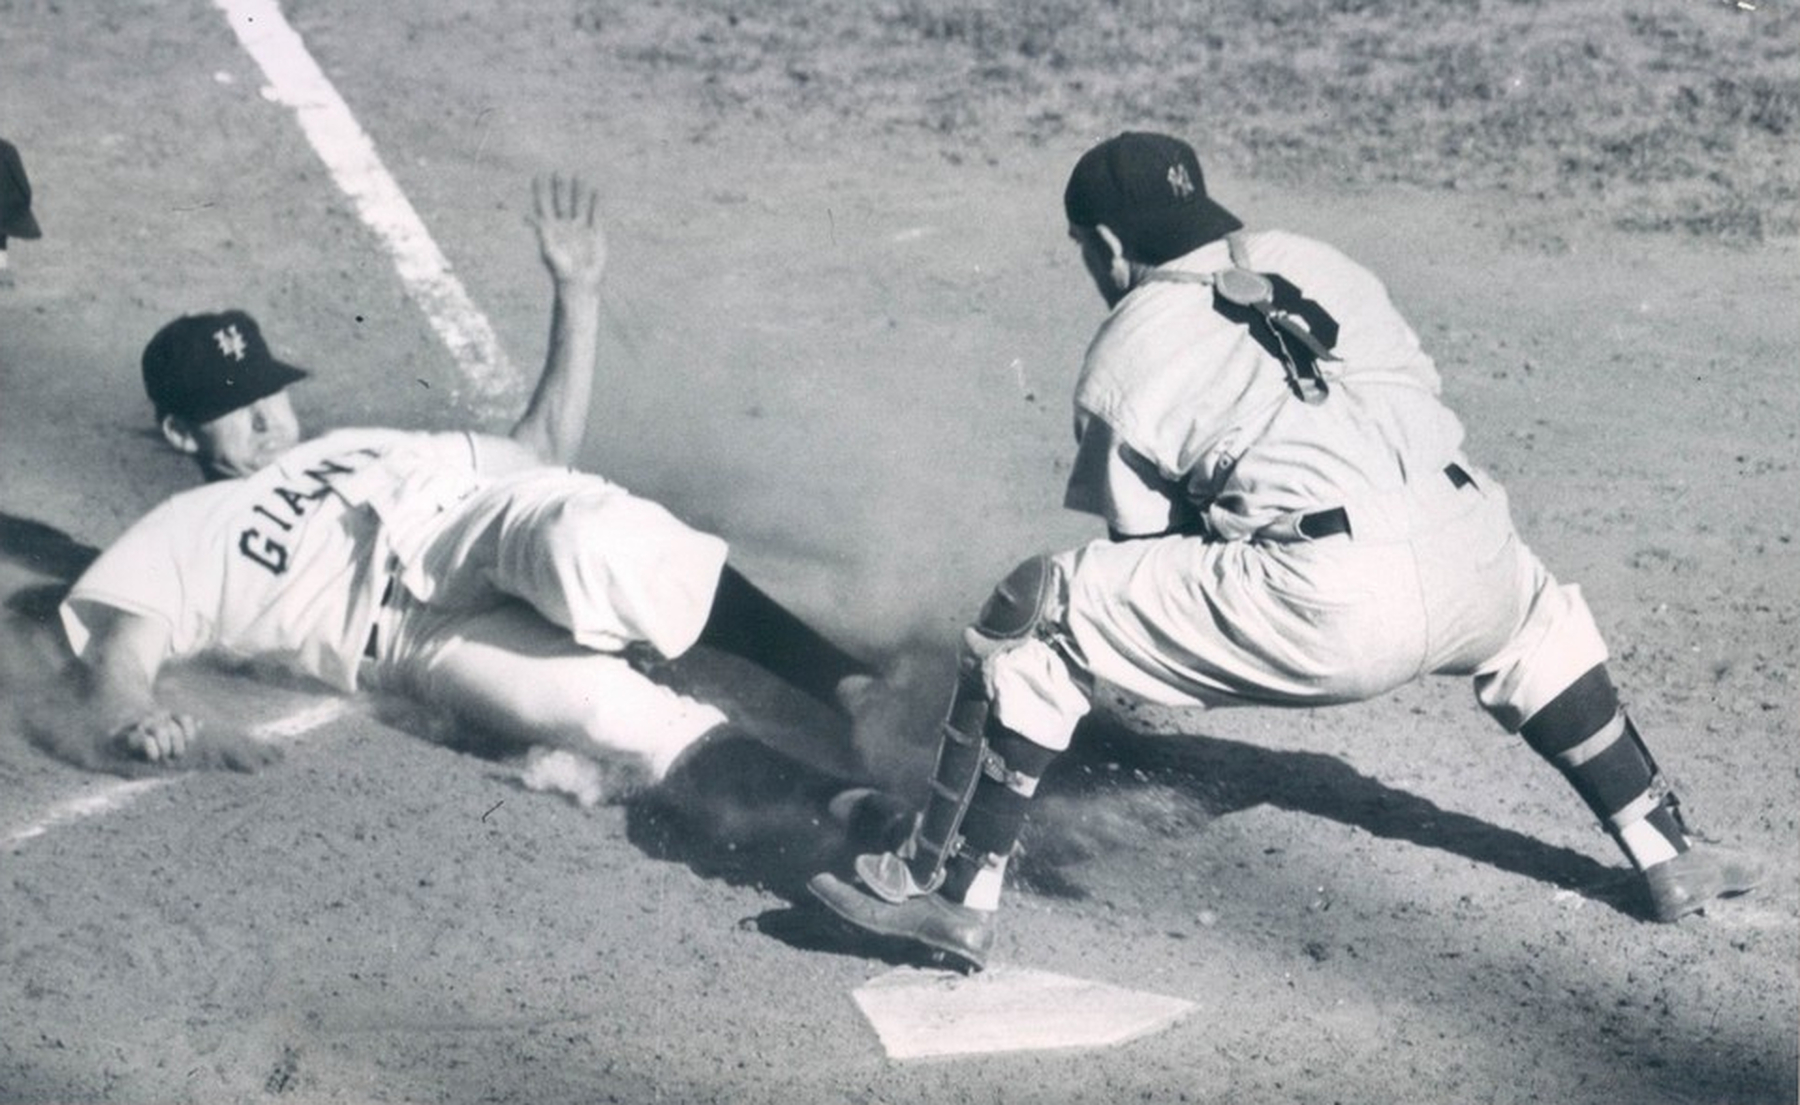 A Close Play At The Plate In Game 3 Of The 1951 World Series